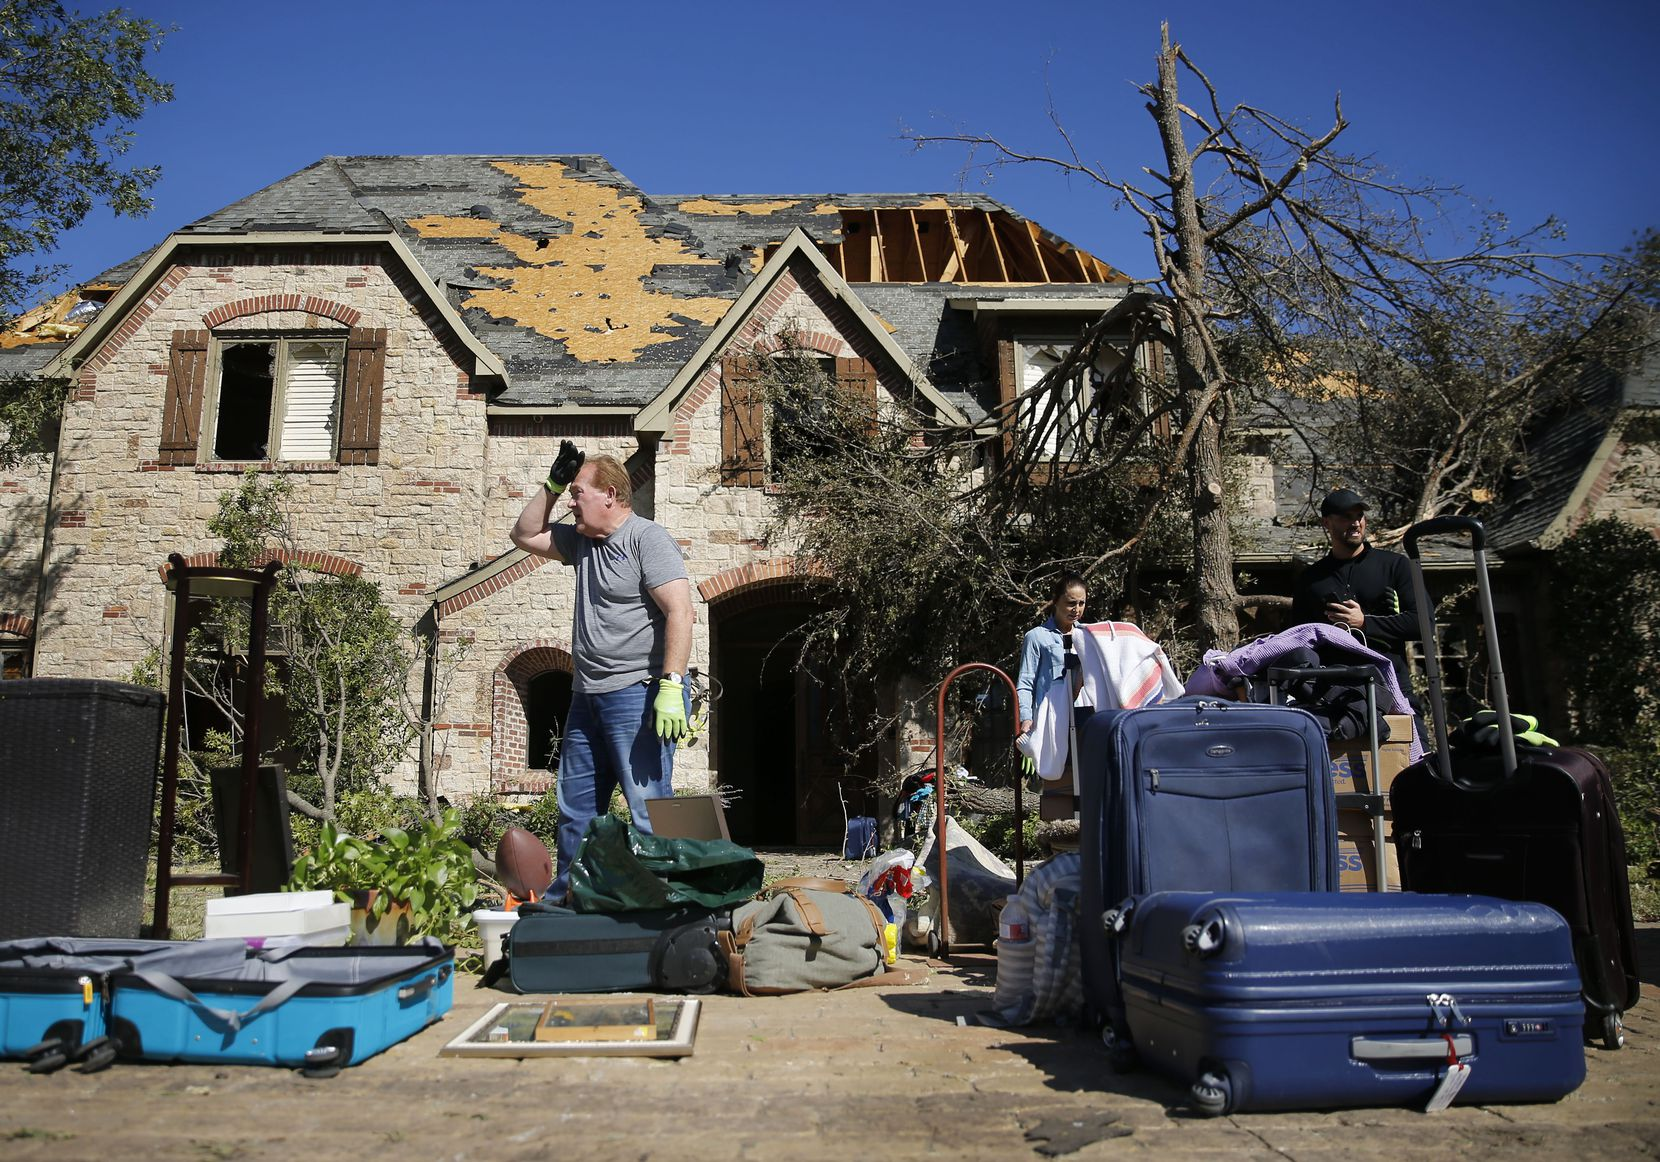 Ken Foster (center) wipes his brow while helping a friend clear some belongings from her damaged home on Pemberton Drive in Dallas, Monday, October 21, 2019. A tornado tore through the neighborhood knocking down trees and ripping roofs from homes.